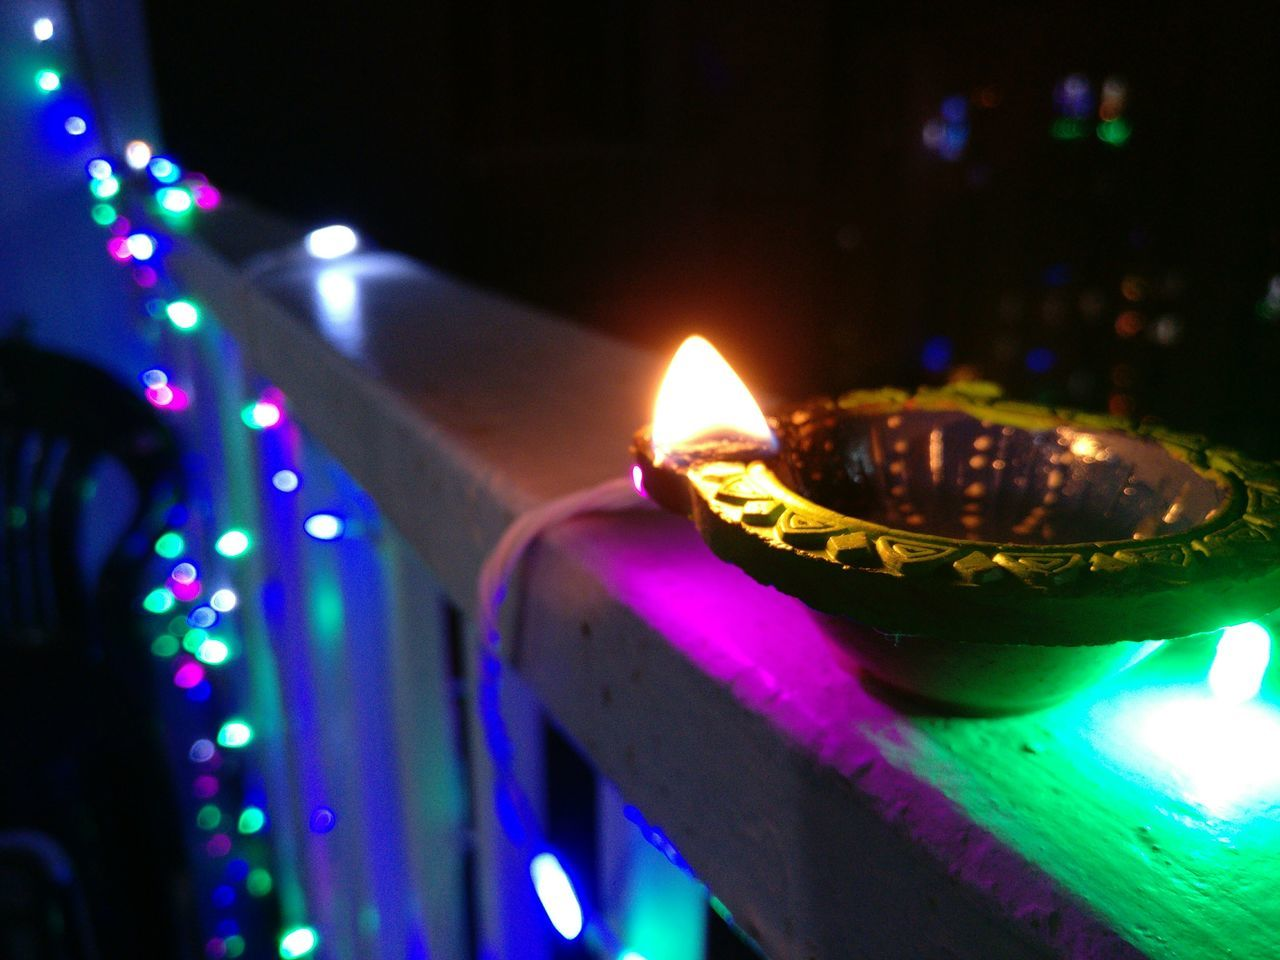 Lighting Equipment Illuminated Heat - Temperature No People Igniting Indoors  Close-up Night Festival Season Festival Of Lights Festival Diwali Diwali Lights Diwali2016 Diwali Night.... :-*